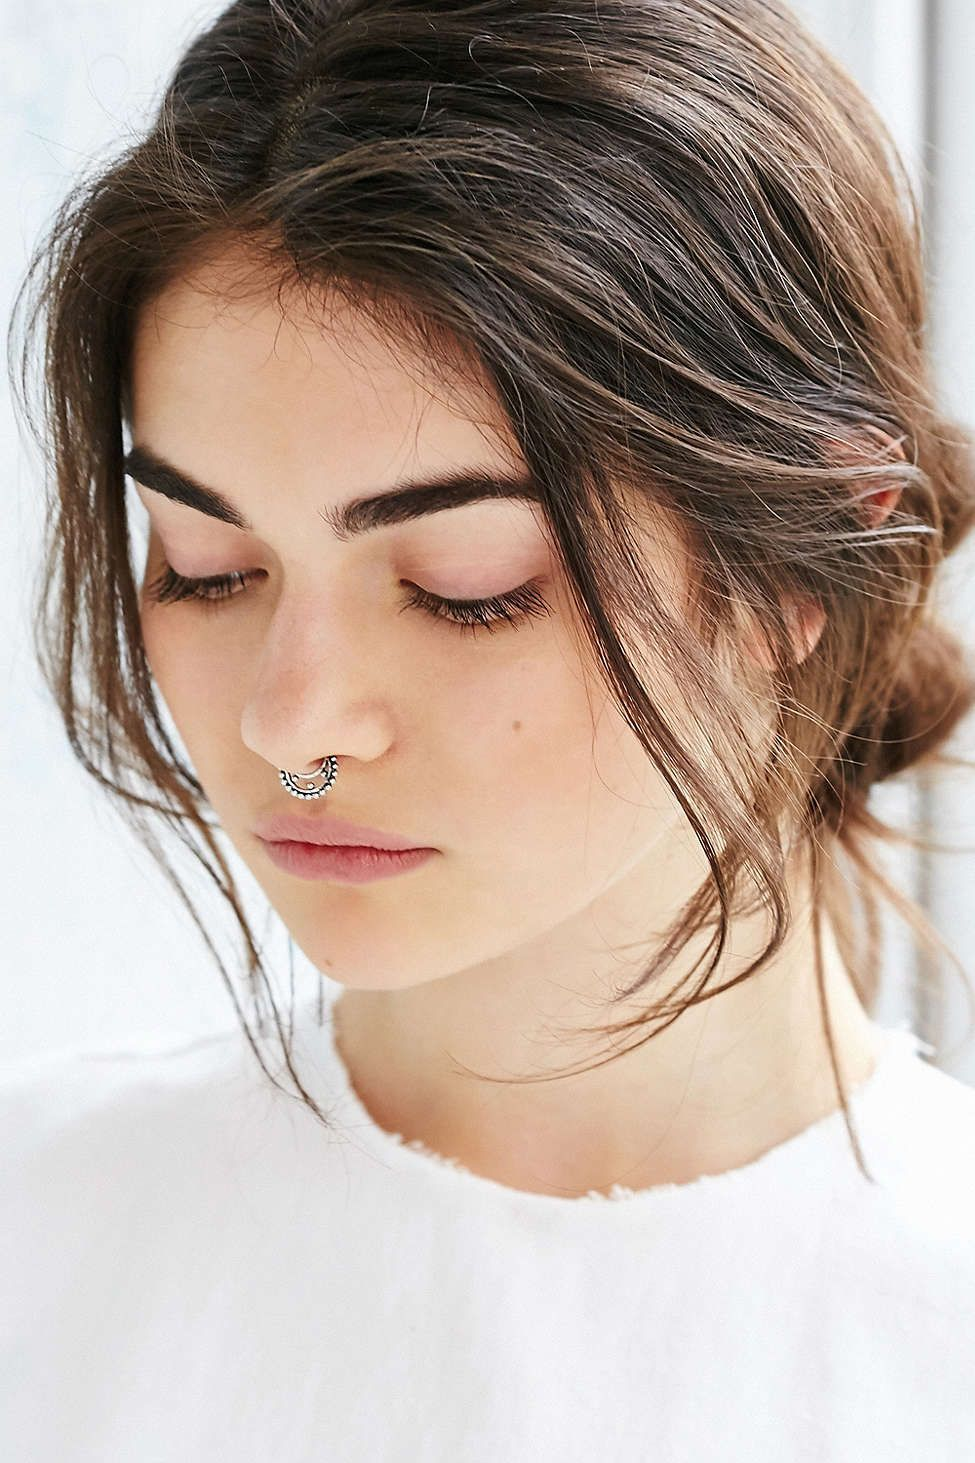 Piercing on nose  Zelma Faux Nose Ring  Urban Outfitters  Hair Beauty  Pinterest